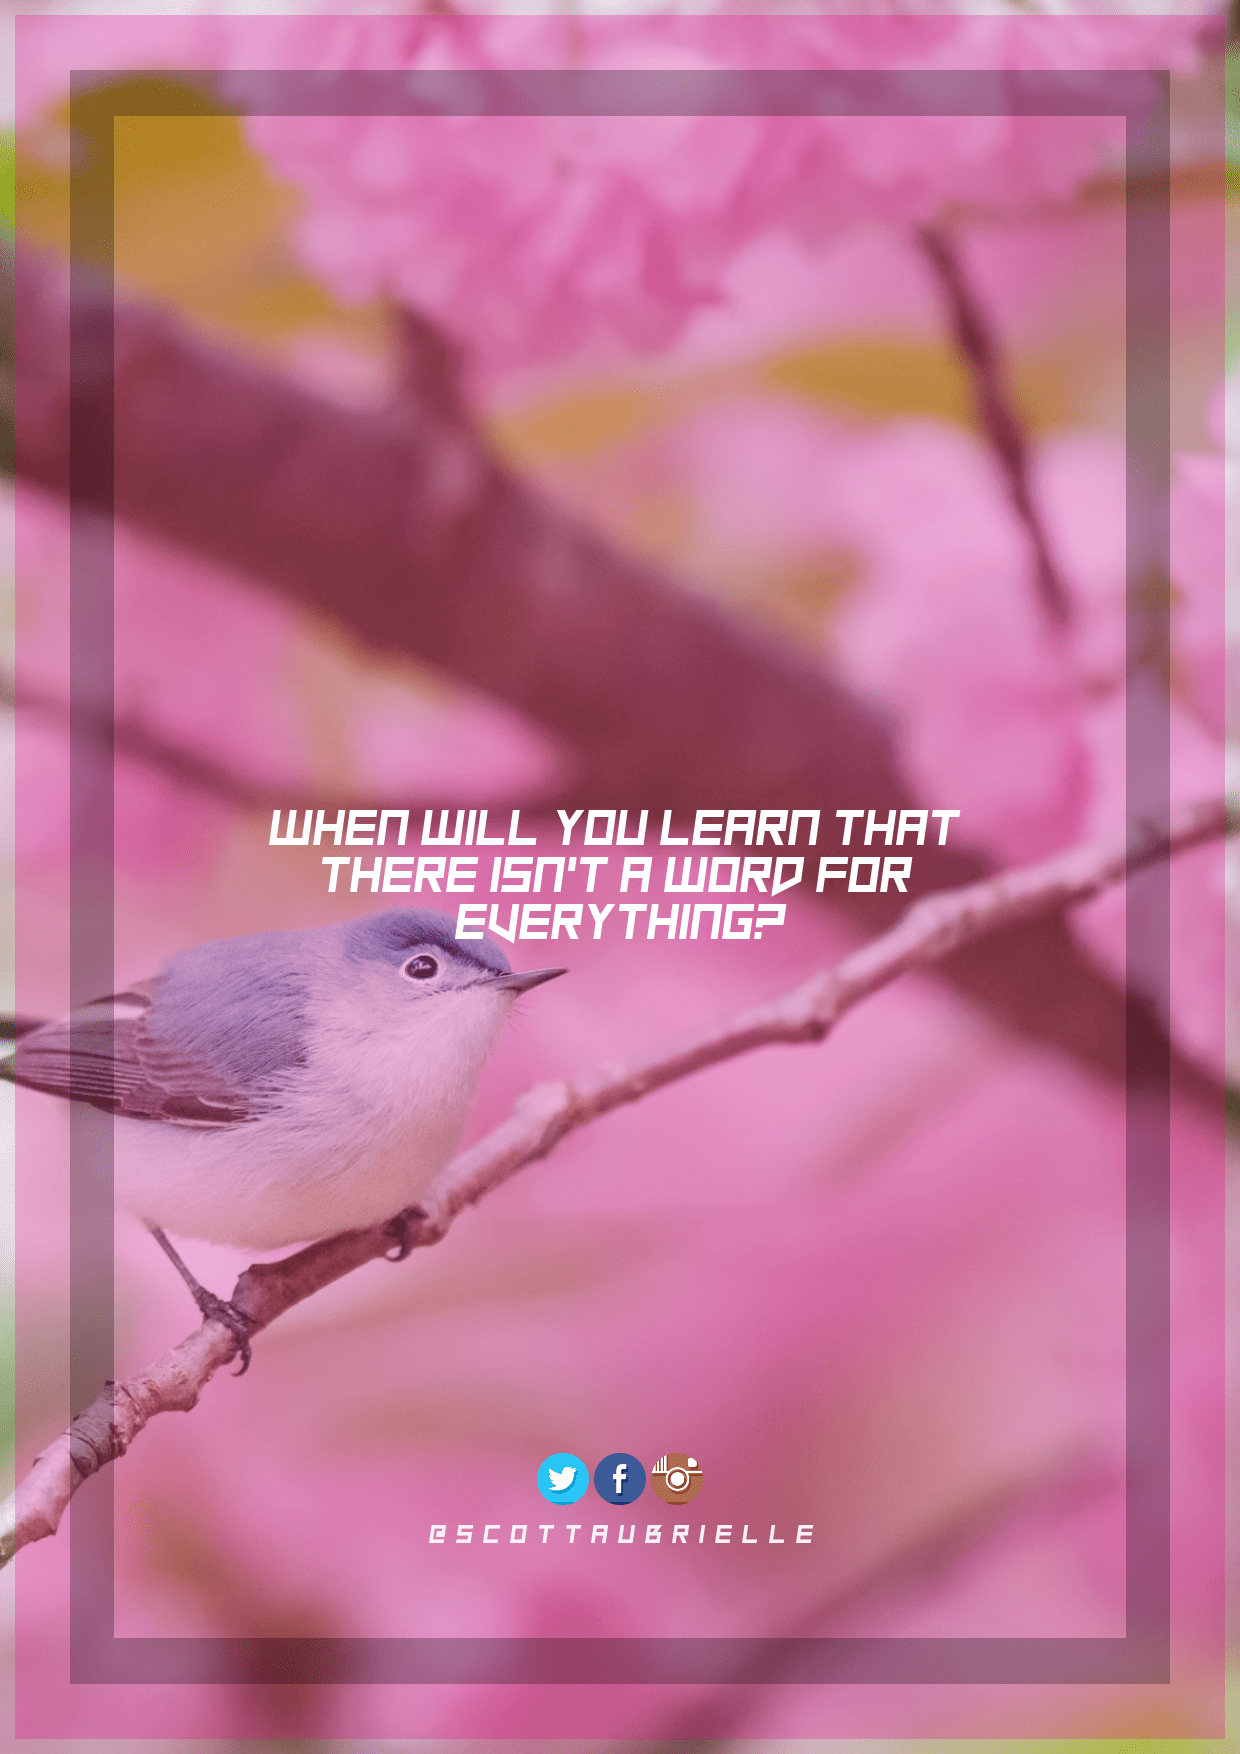 Pink,                Feather,                Beak,                Petal,                Branch,                Bird,                Twig,                Graphics,                World,                Art,                Brand,                Text,                Line,                 Free Image